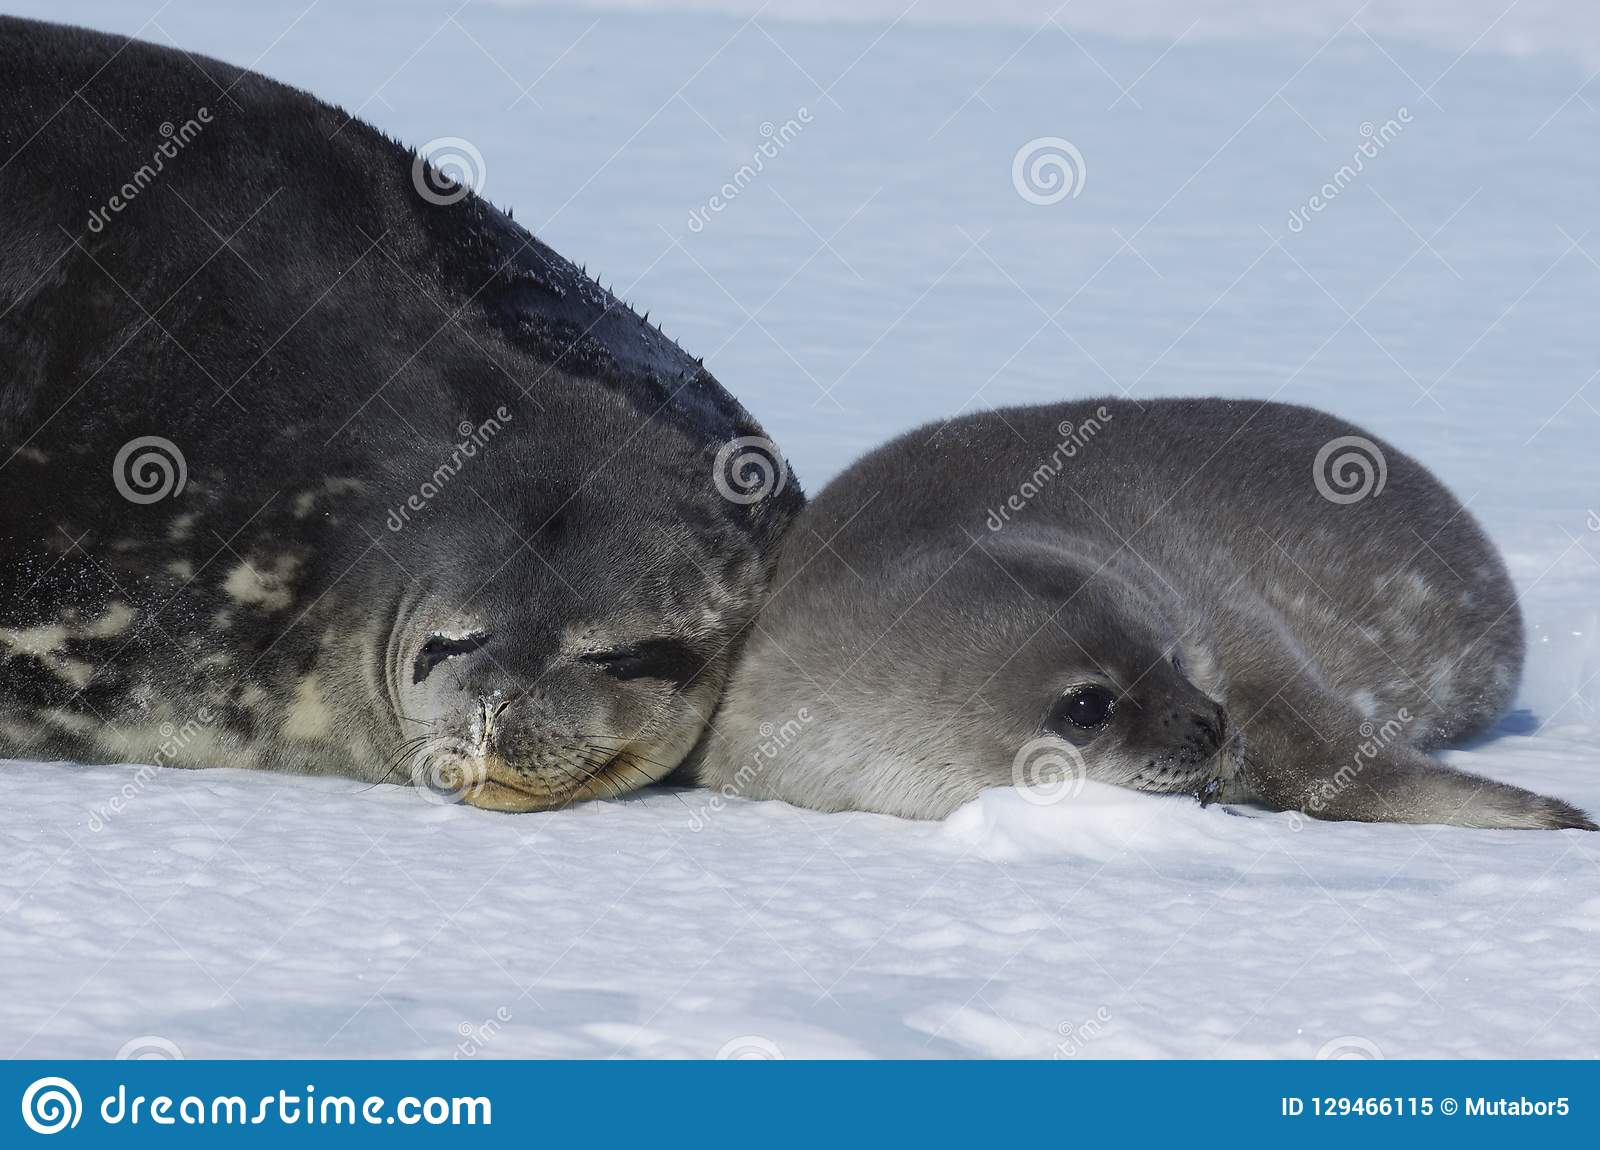 Seals - ringed seal Pusa hispida, lying in the snow on a sunny day and looking at the camera.